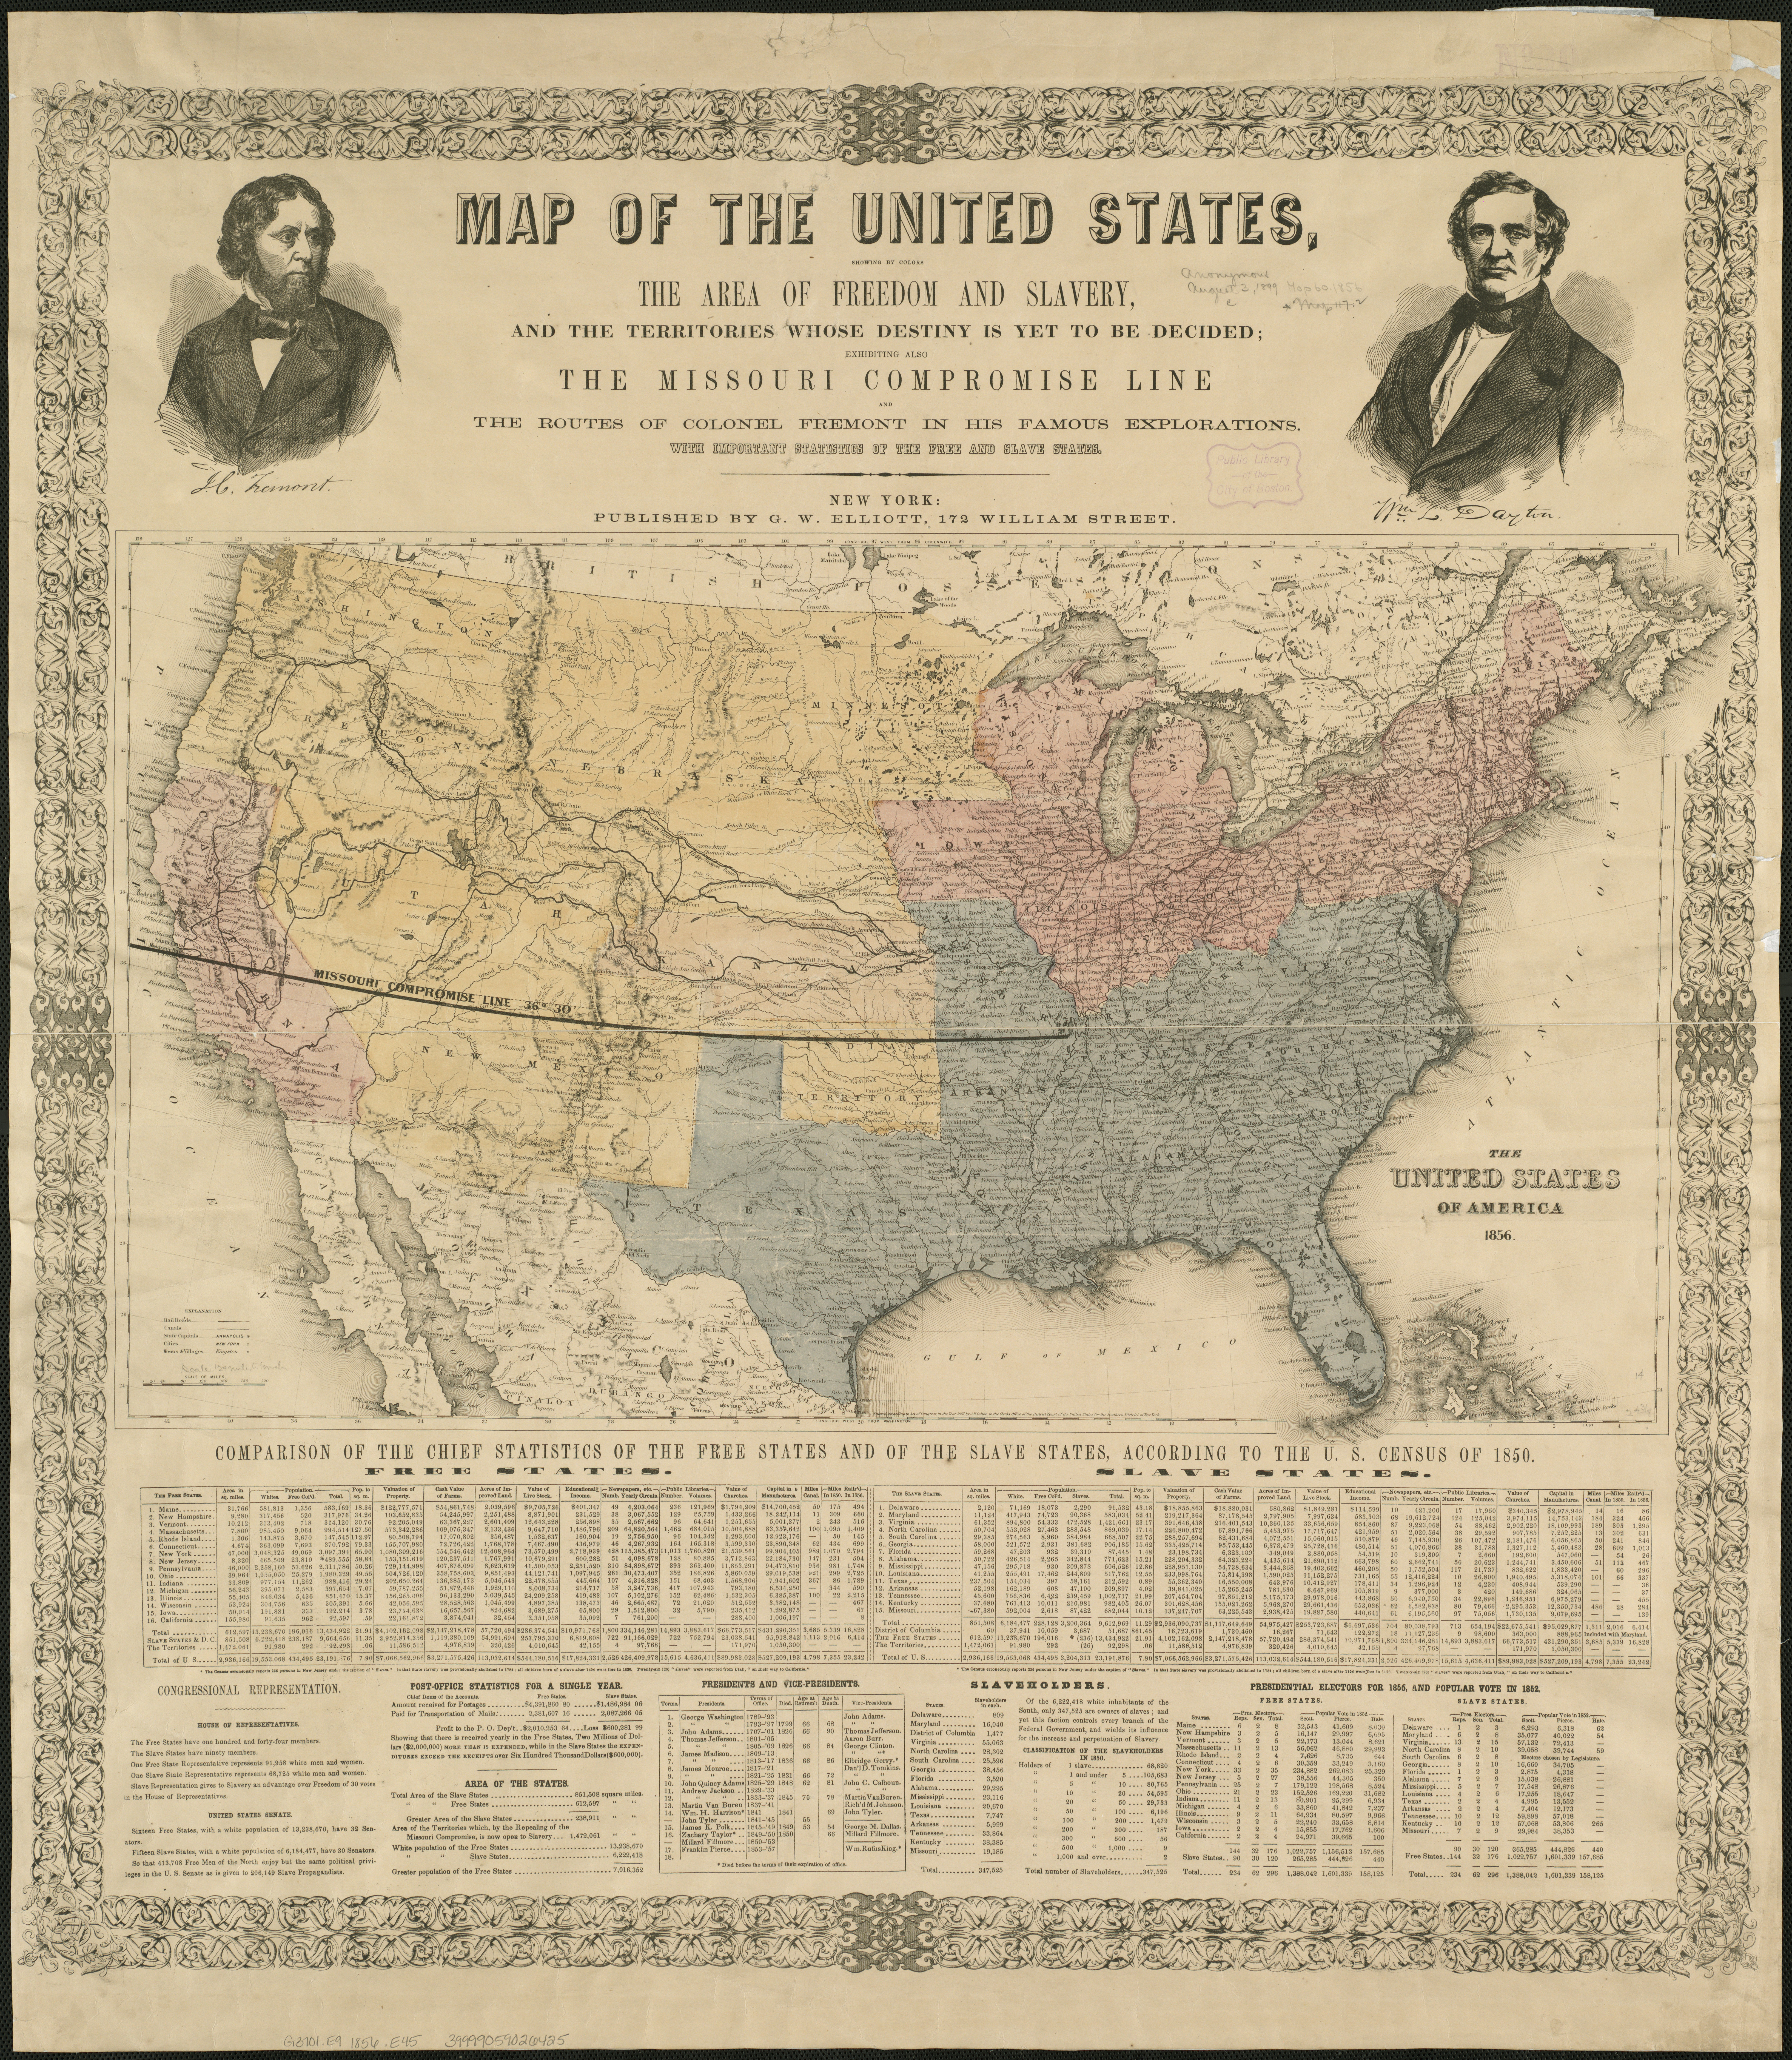 File Map Of The United States Showing By Colors The Area Of Freedom And Slavery And The Territories Whose Destiny Is Yet To Be Decided Exhibiting Also